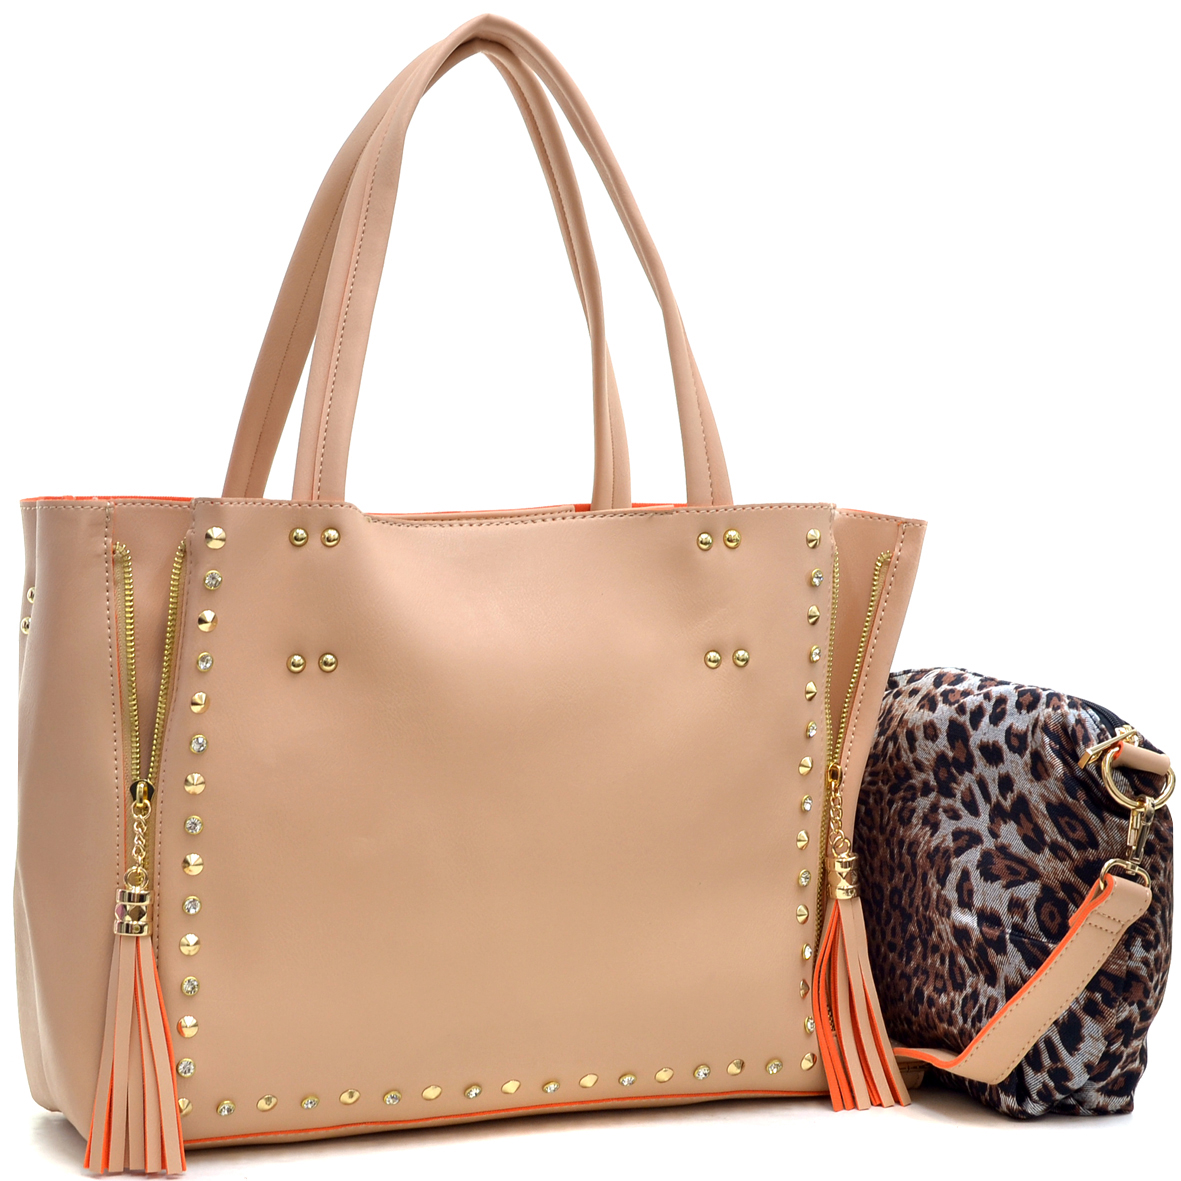 Faux Leather Studded 2-in-1 Tote Bag with Tassels